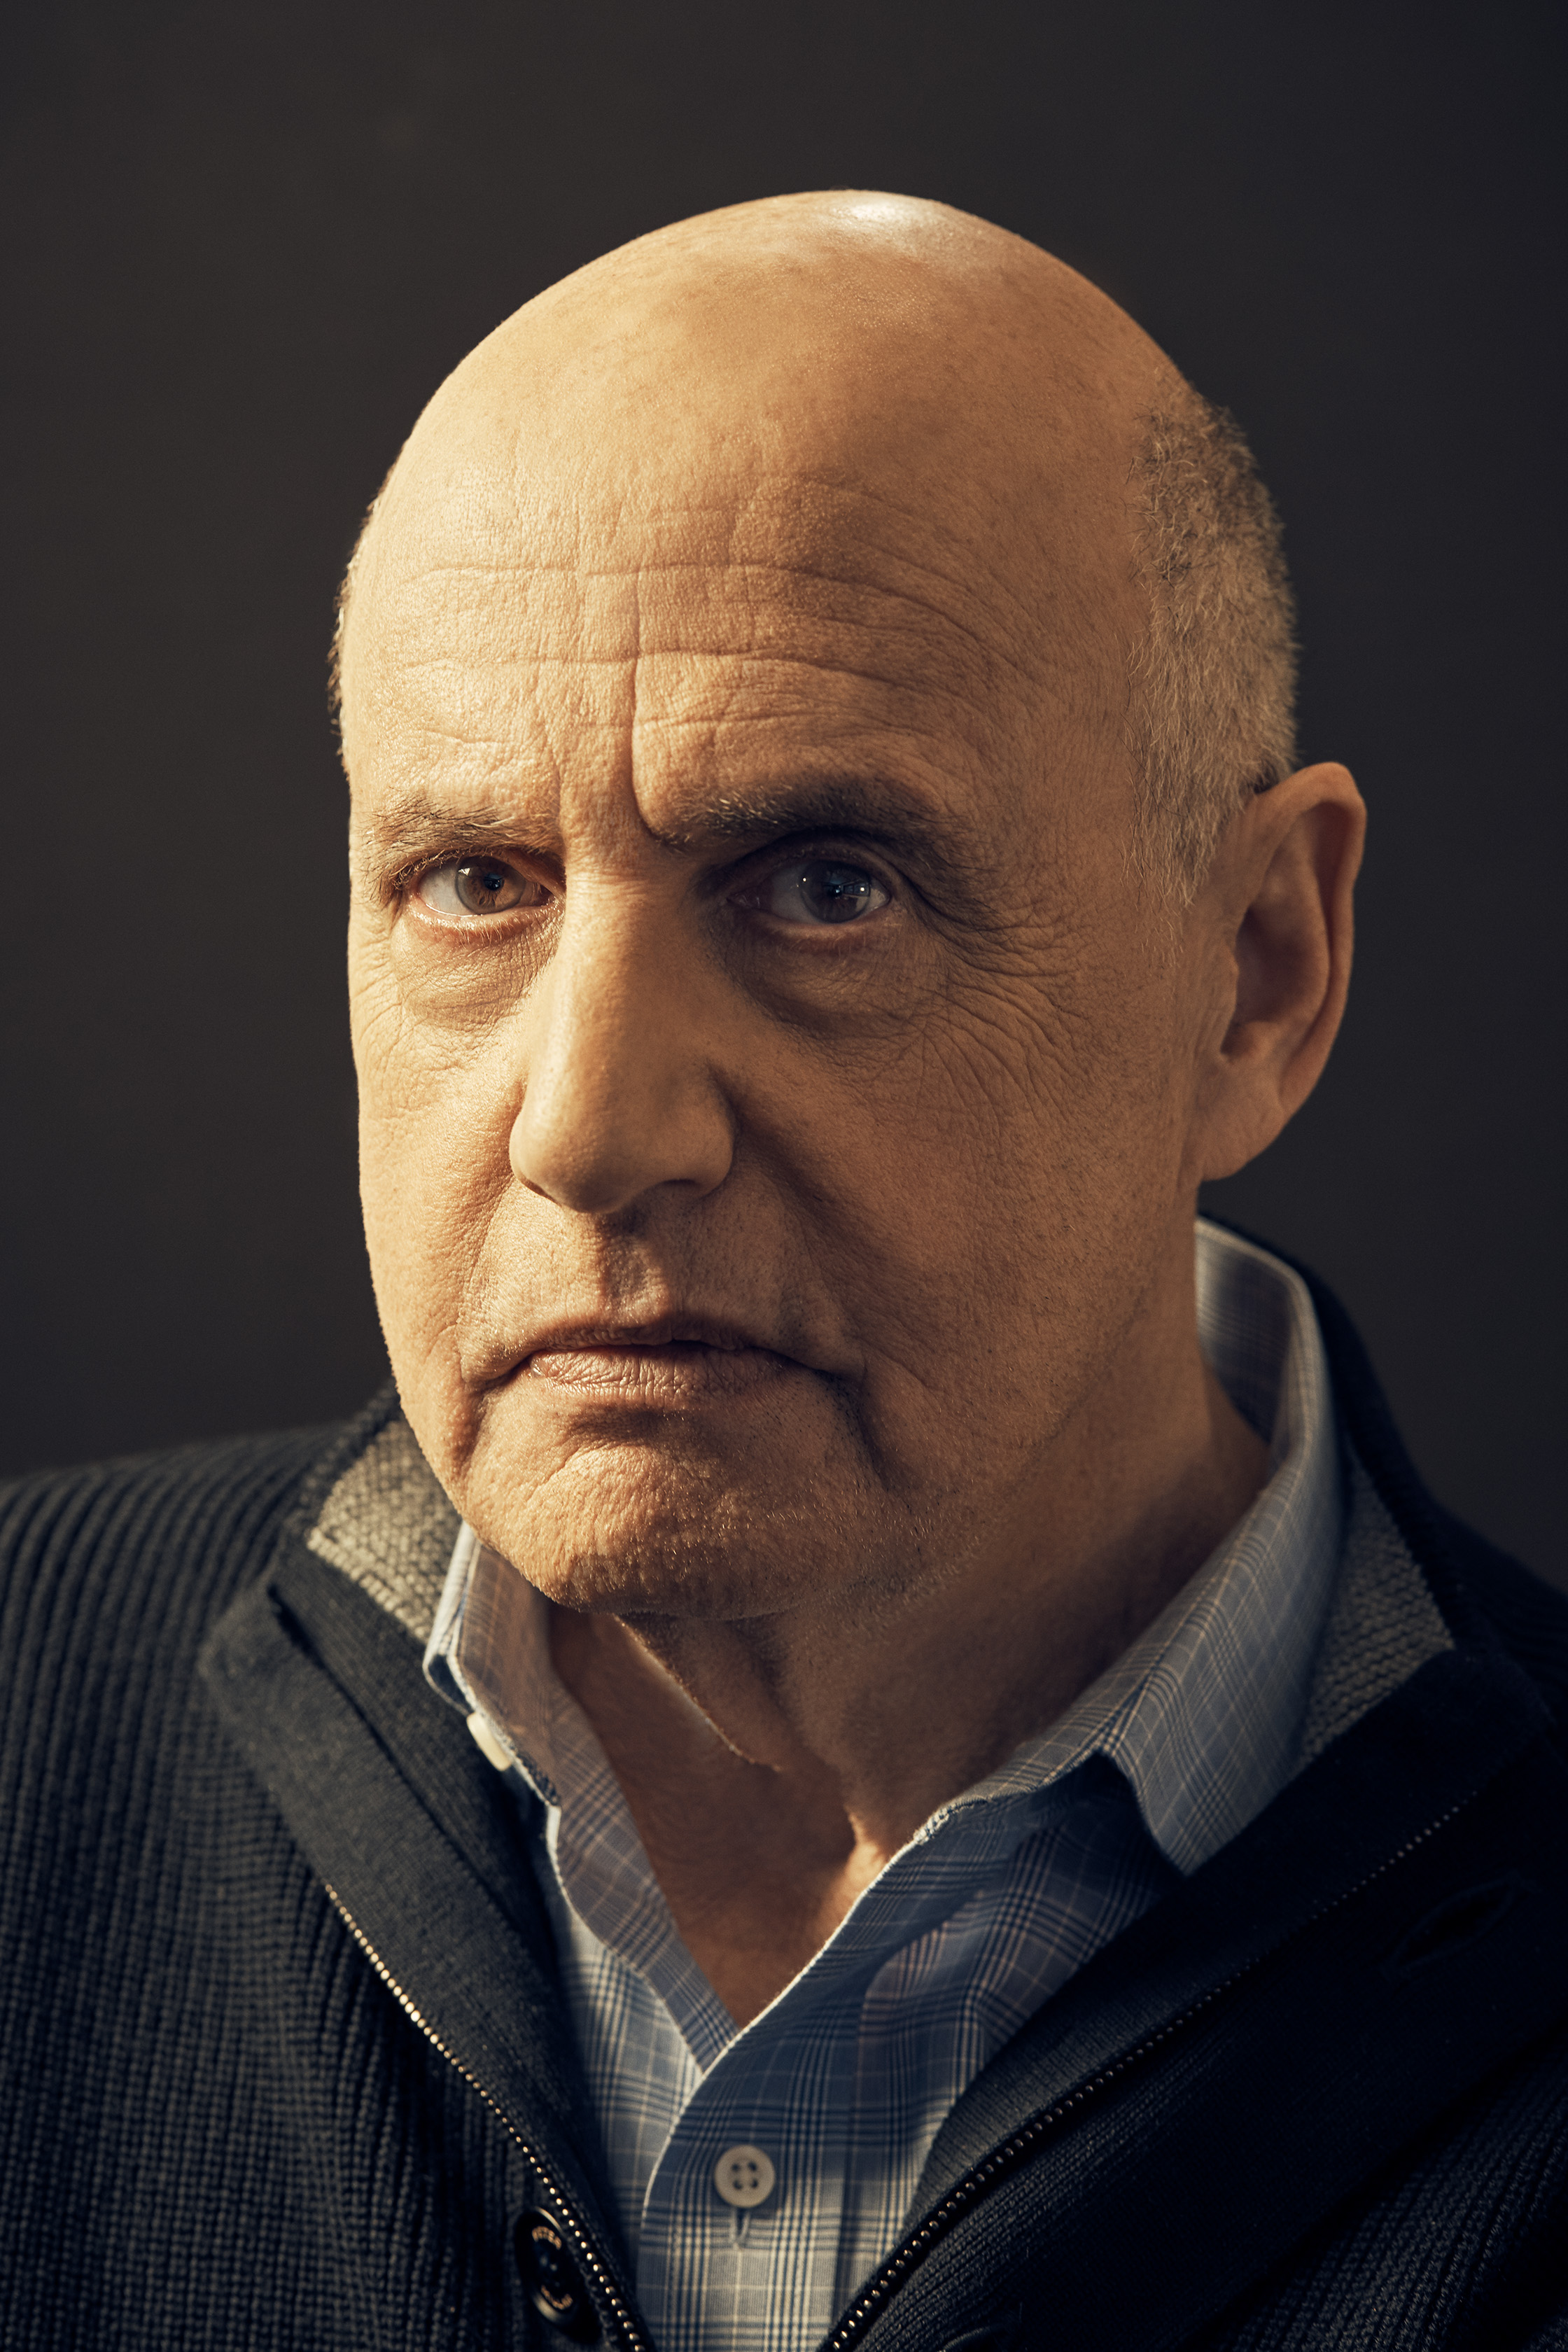 041618_HollywoodReporter_JeffreyTambor_BLACK BACKDROP_031-4.jpg